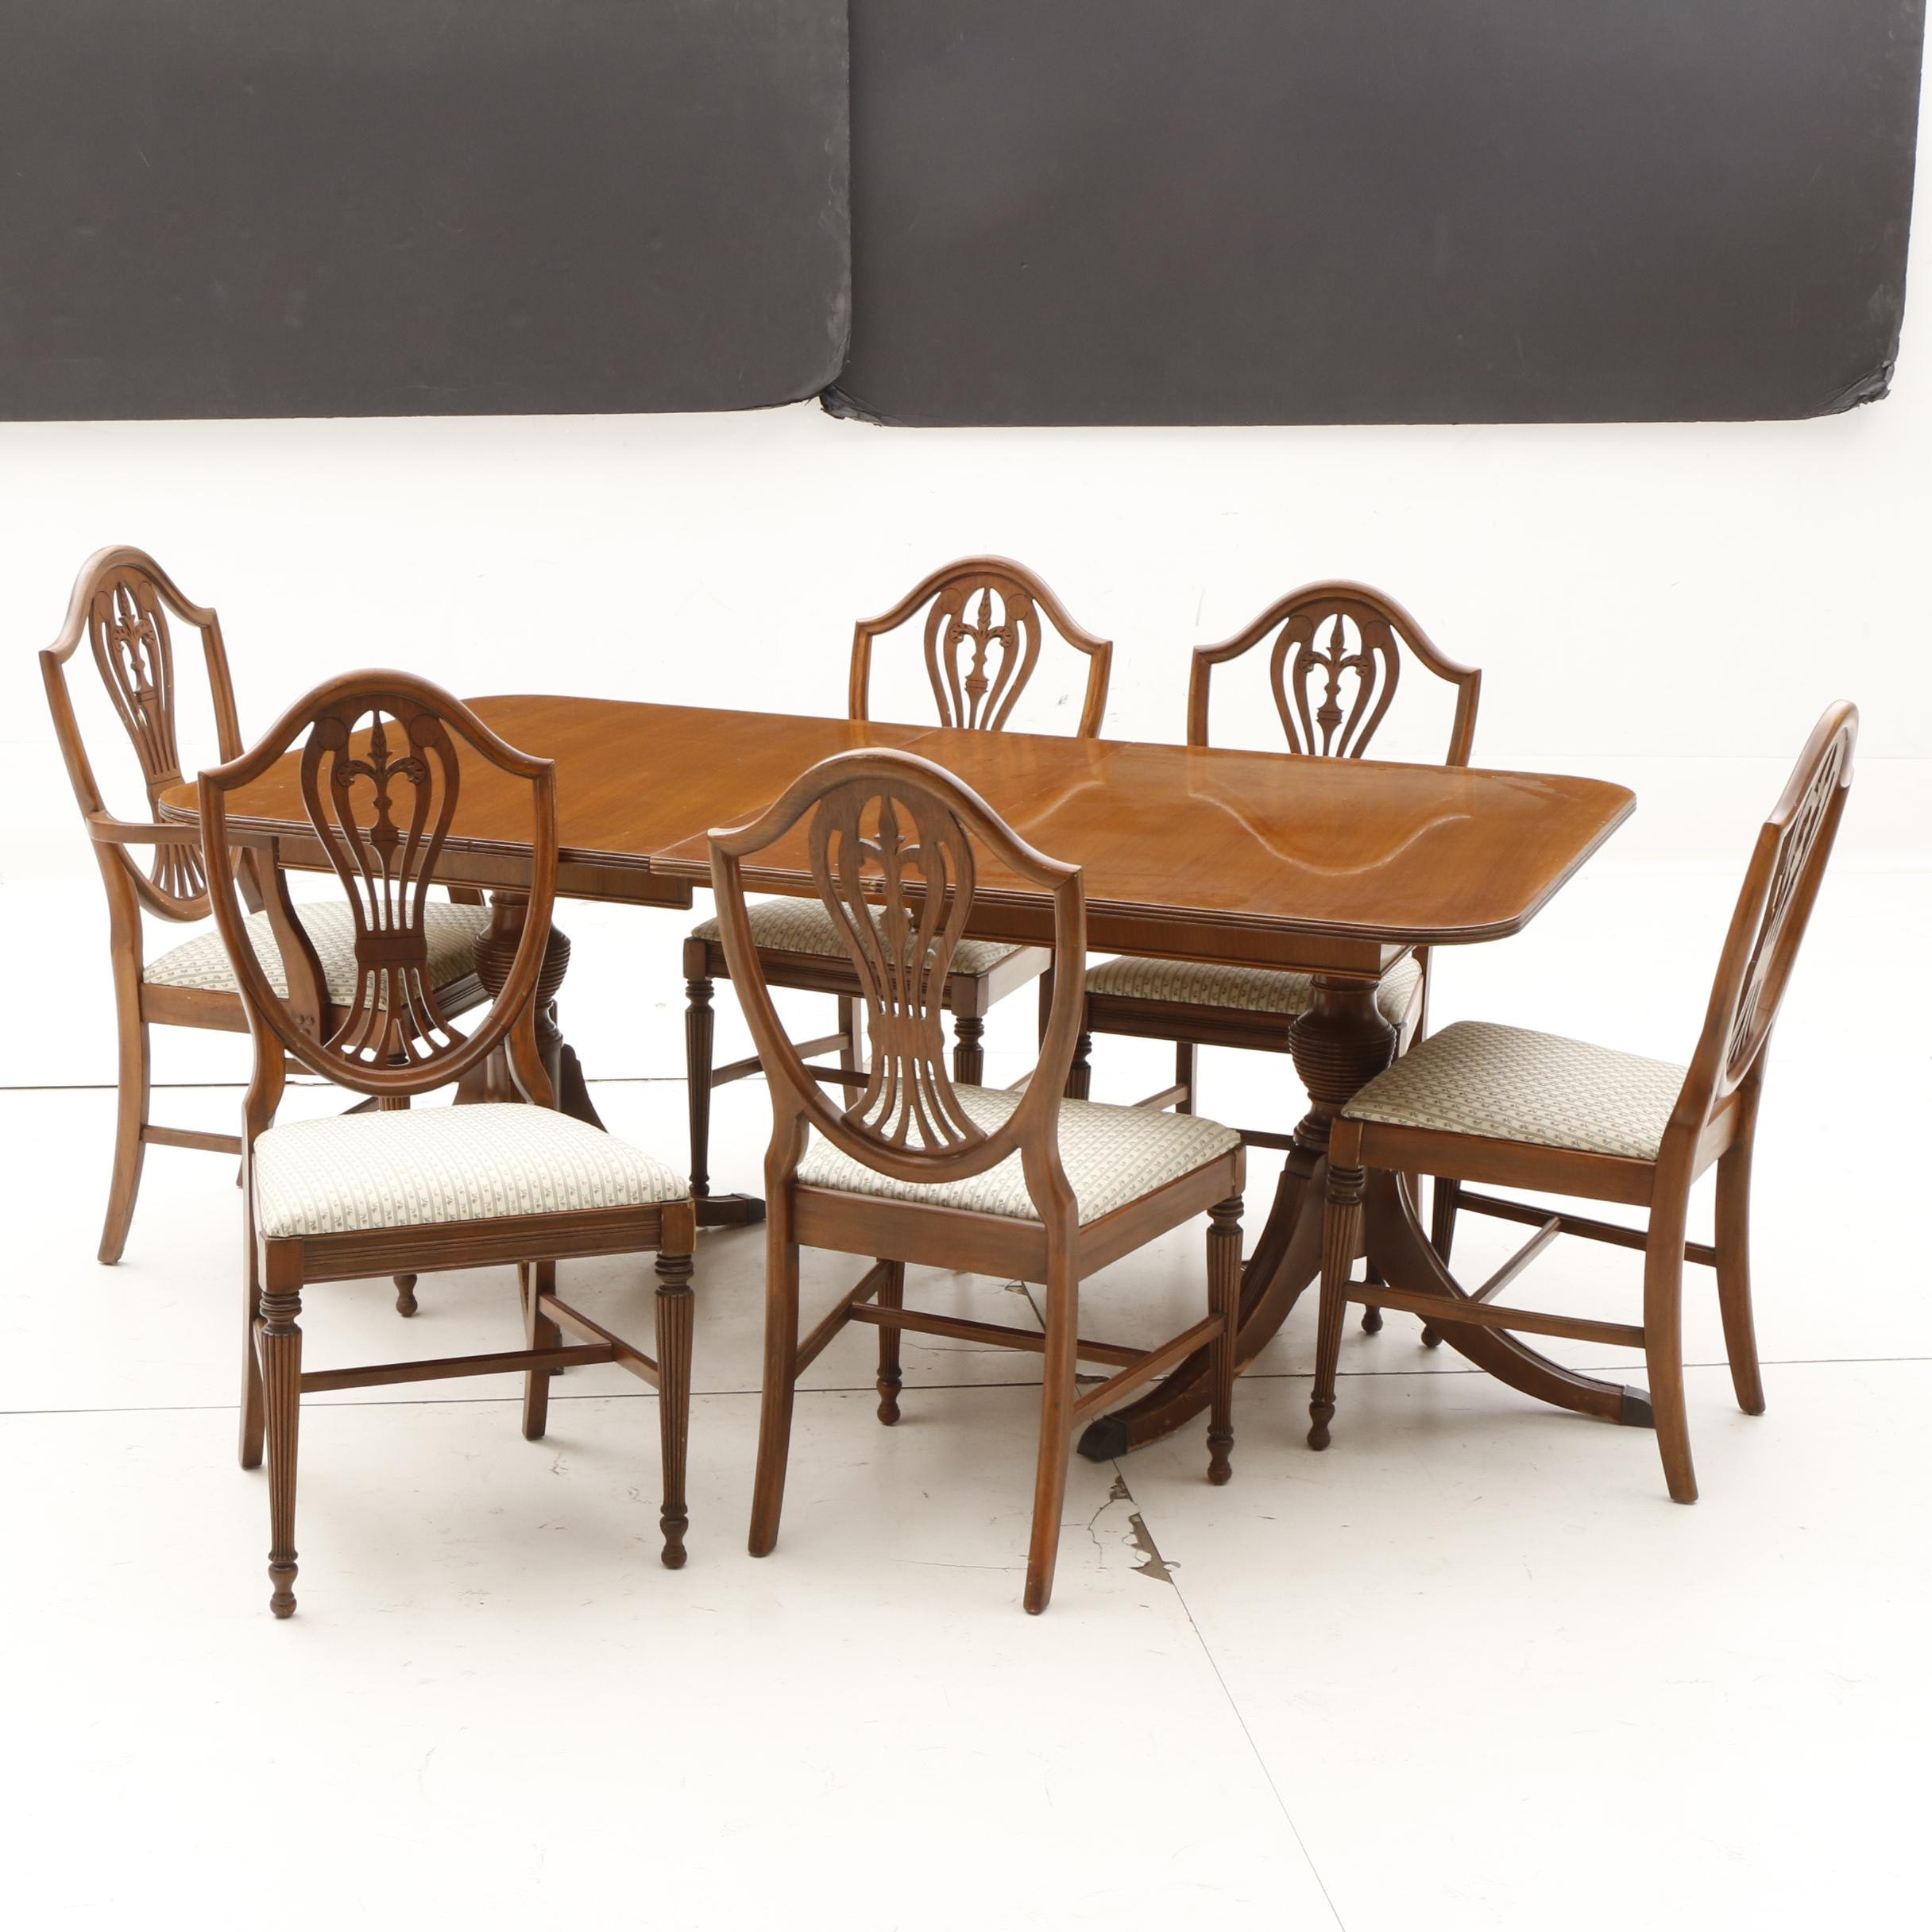 Hepplewhite Style Dining Table and Chairs in Mahogany